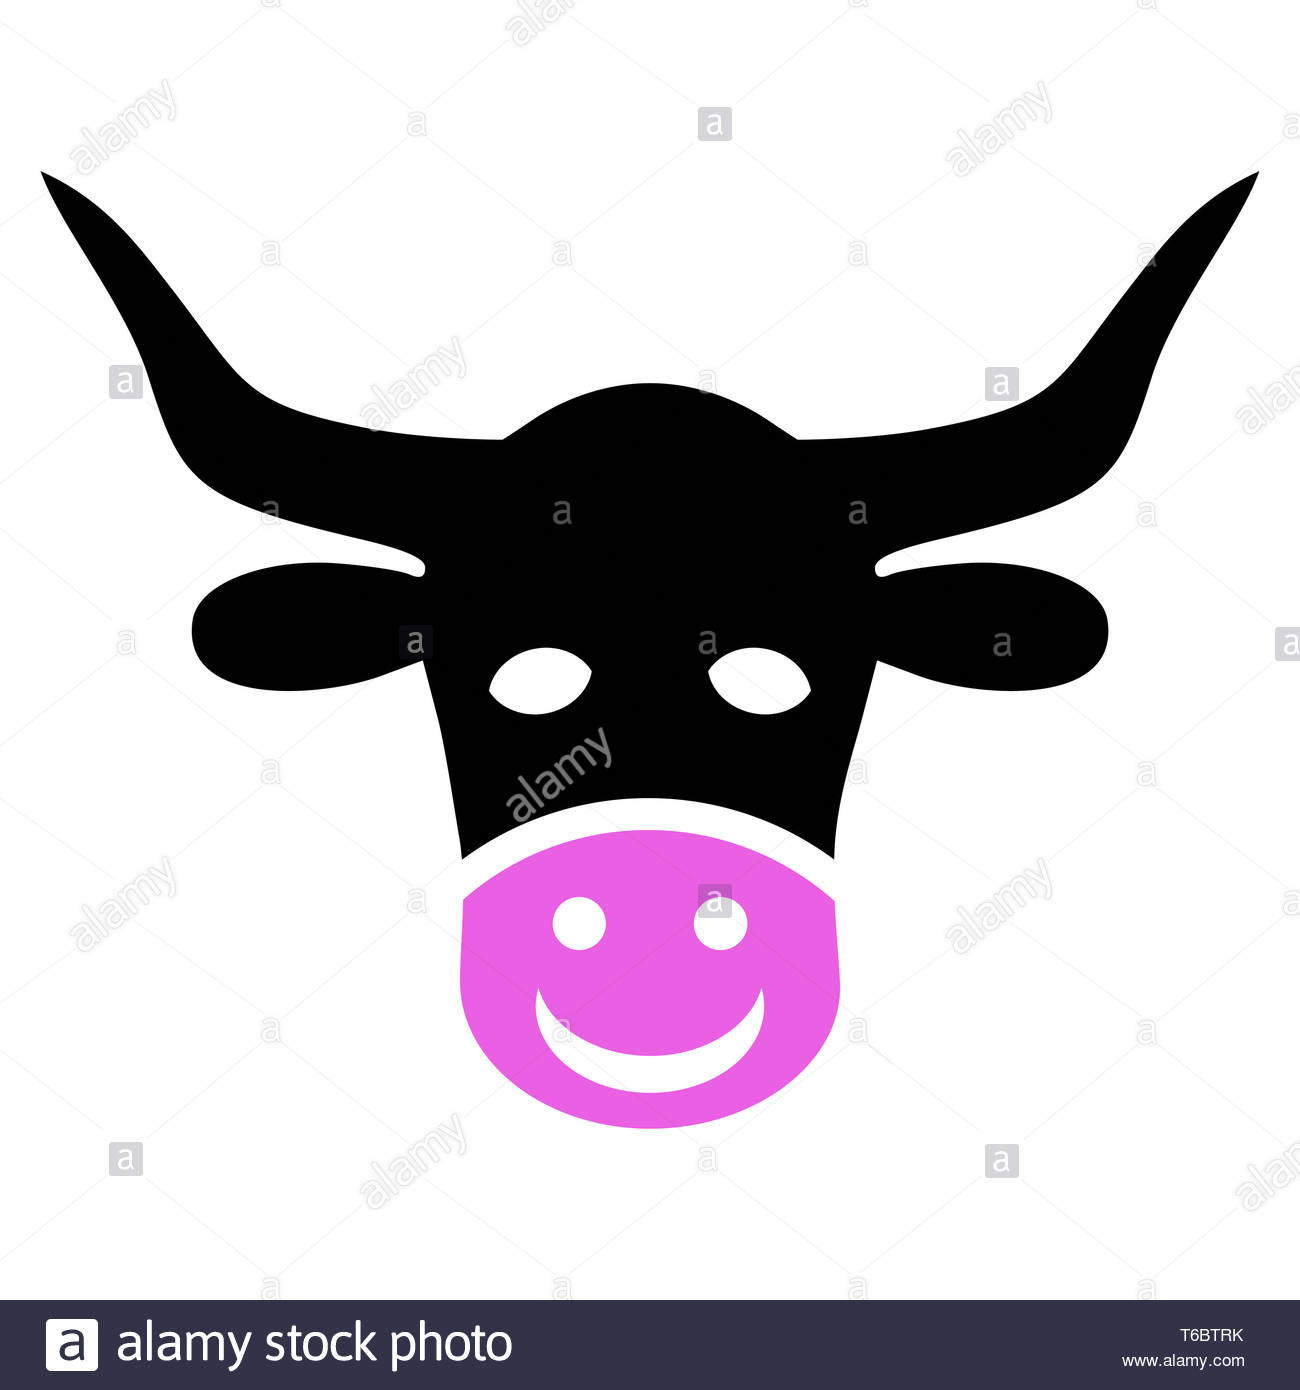 Funny Cow Head Stock Photos & Funny Cow Head Stock Images